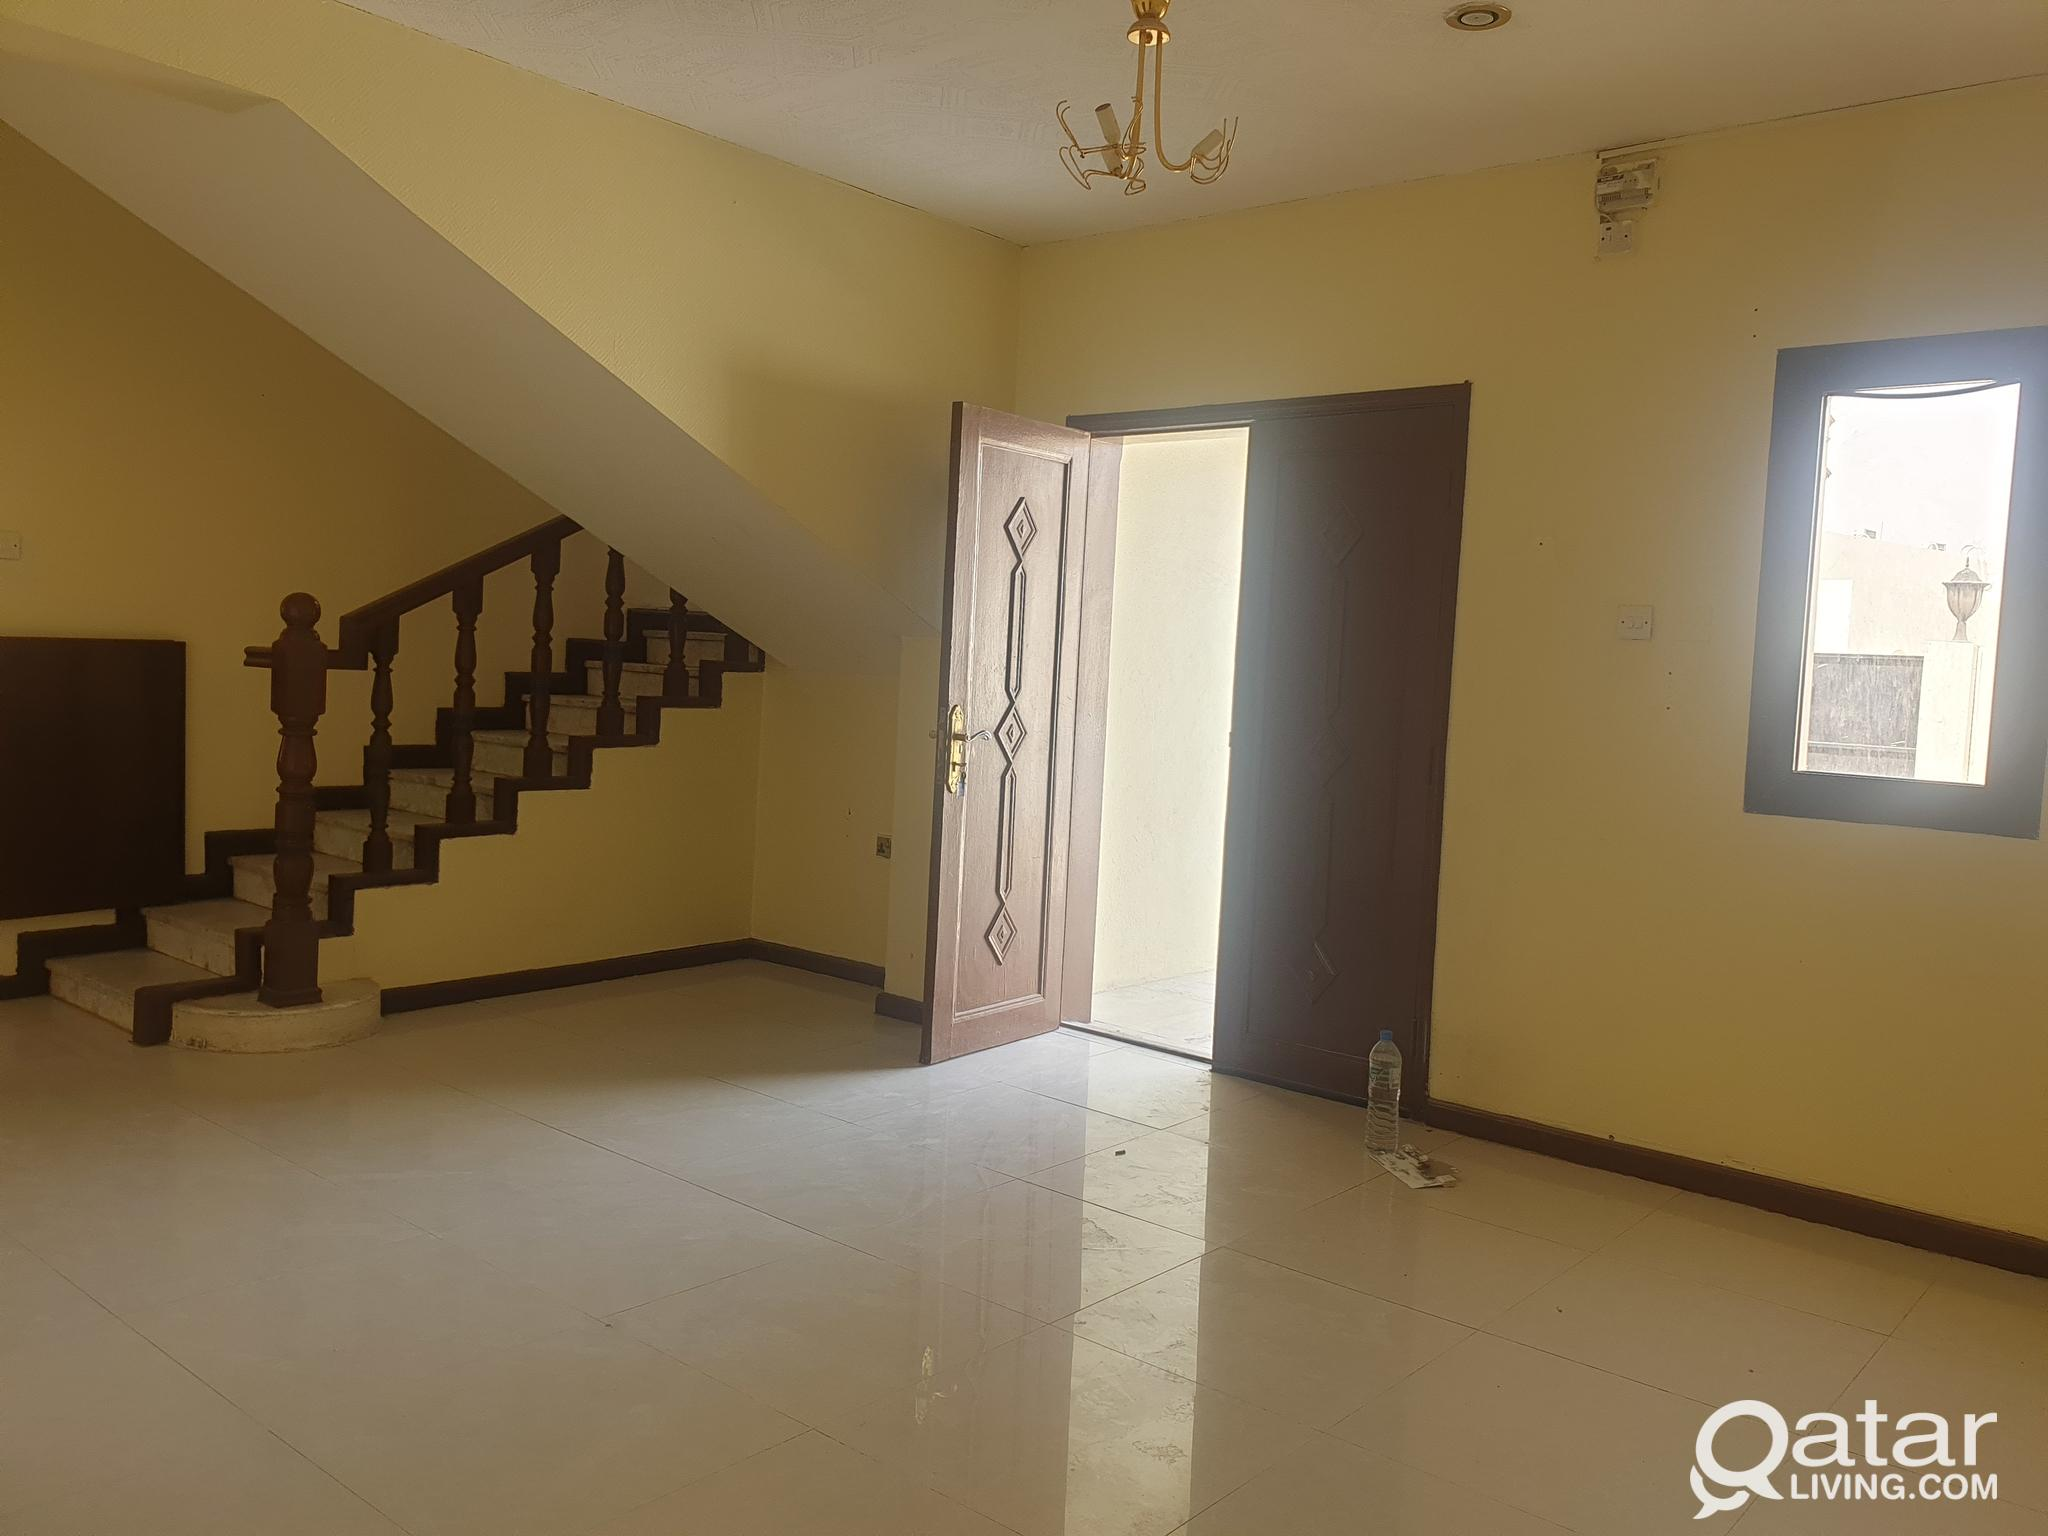 3 Bedroom Residential Villa for Rent in New Salata